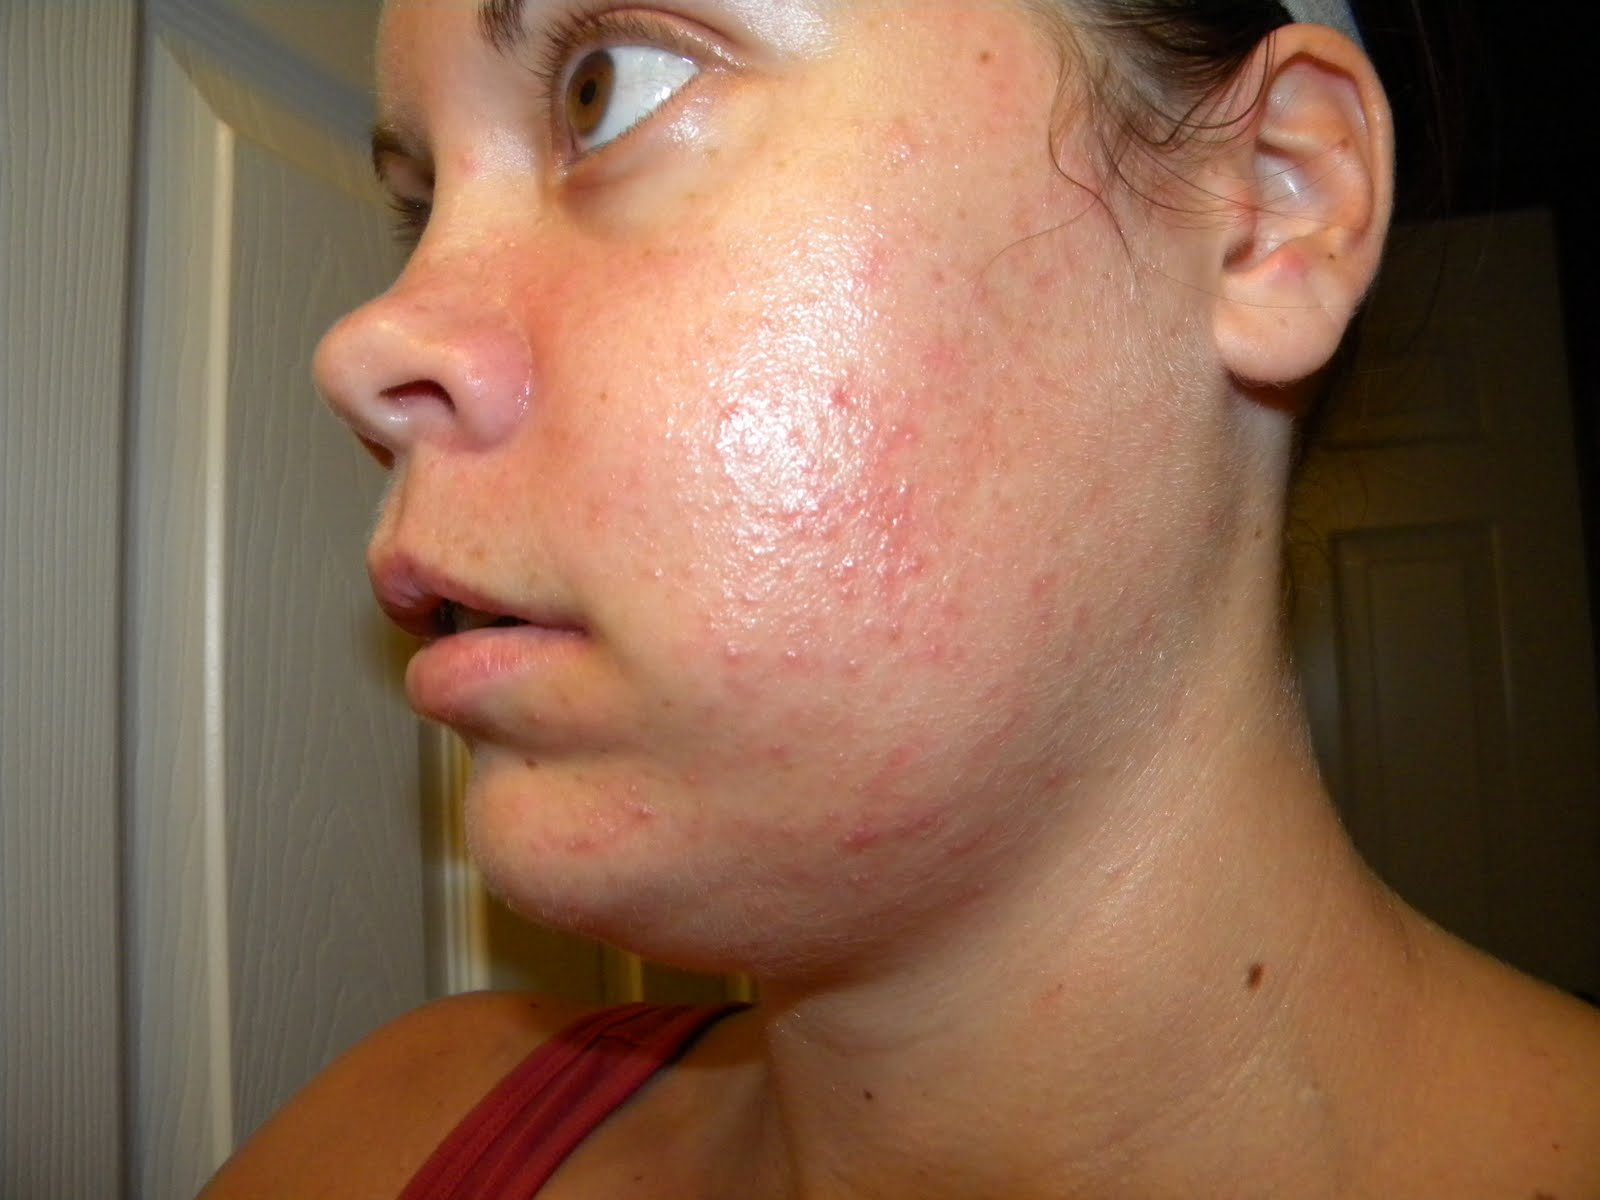 acne 3 13 powerful home remedies for acne in one study, 45 individuals with acne were given omega-3 fatty acid supplements containing both epa and dha daily.